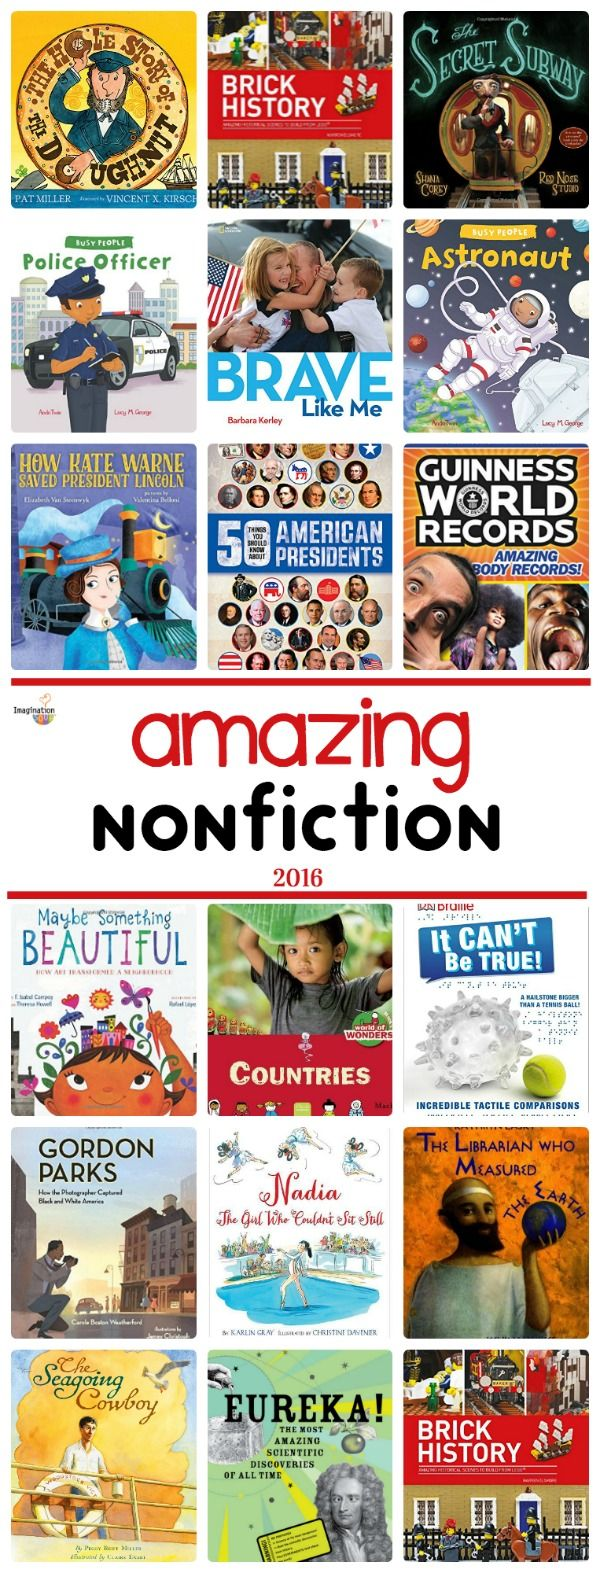 don't forget to read nonfiction, too! Here's a list of children's book recommendations to start. . .